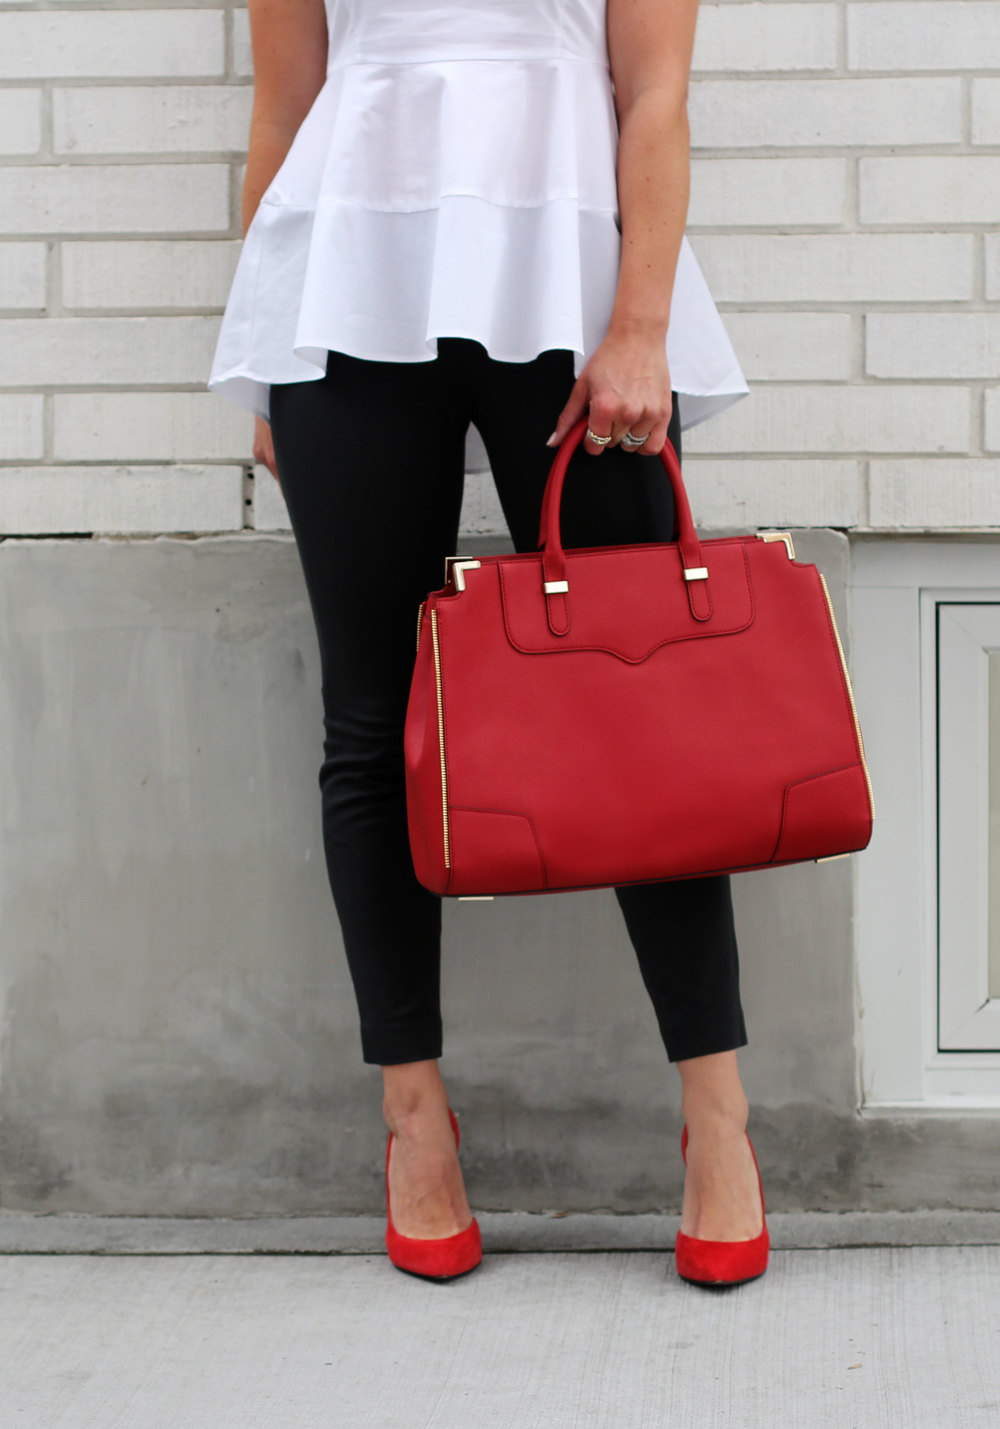 Business Casual, Interview Outfit, J.Crew Minnie Pants, Zara Peplum Top, Rebecca Minkoff Amorous Satchel, Vintage Necklace, Jessica Simpson Claudette Pumps